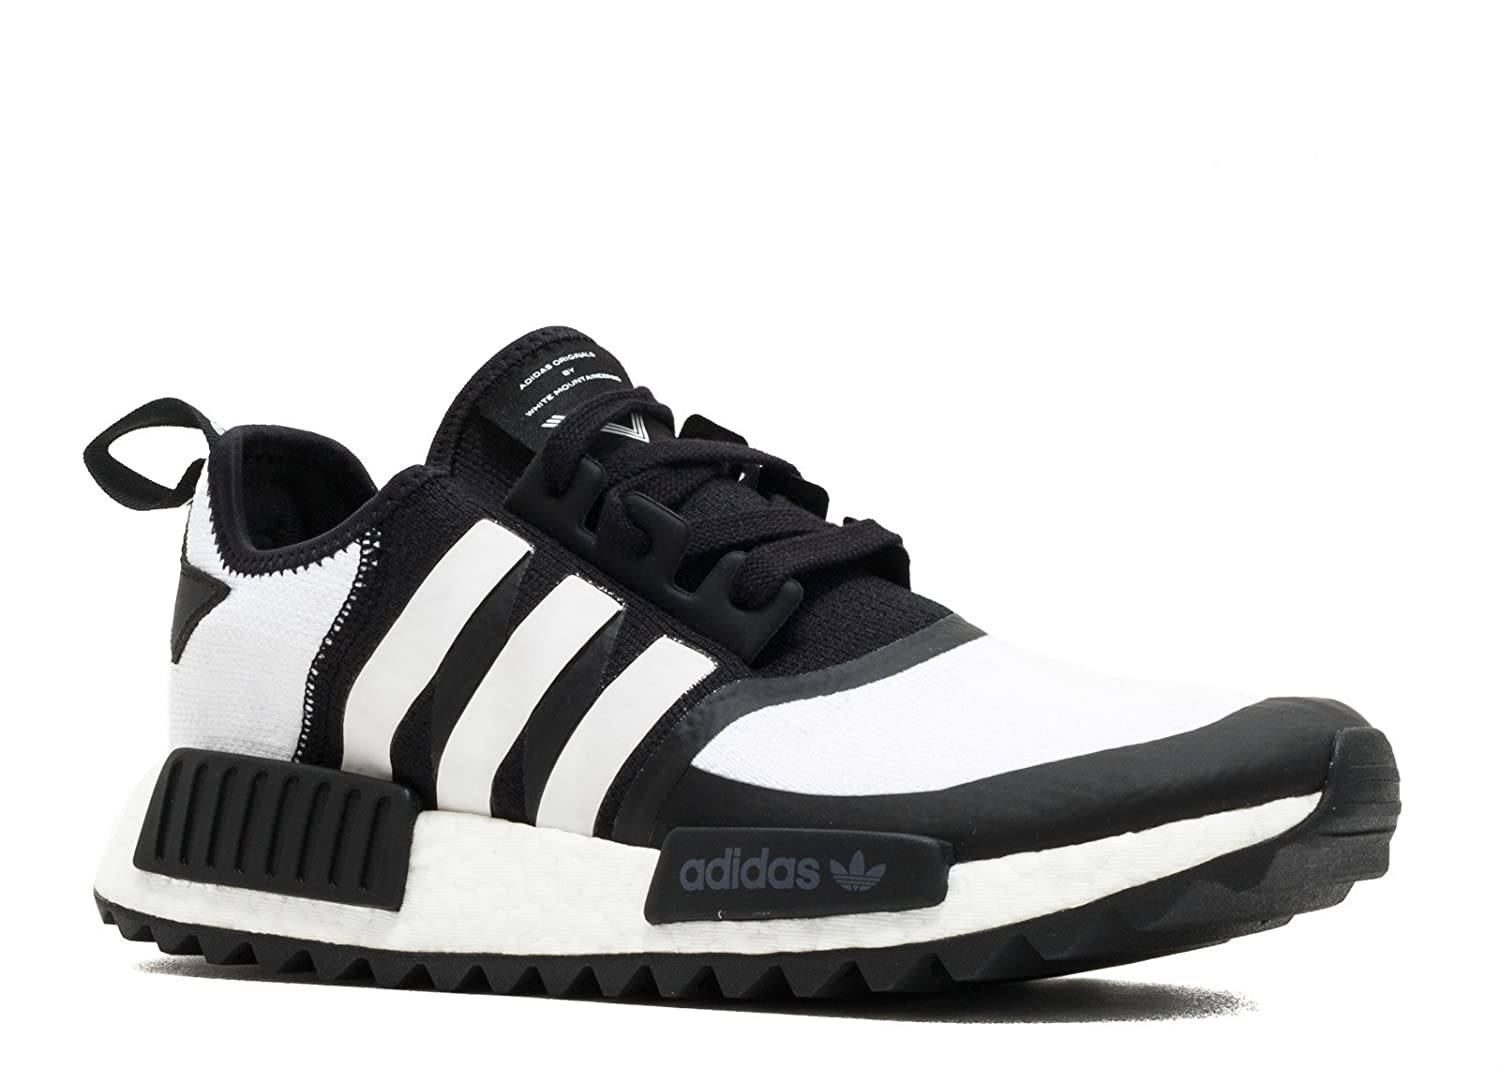 sports shoes 6ce6d 28f78 Amazon.com | adidas Wm NMD Trail Pk 'White Mountaineering ...